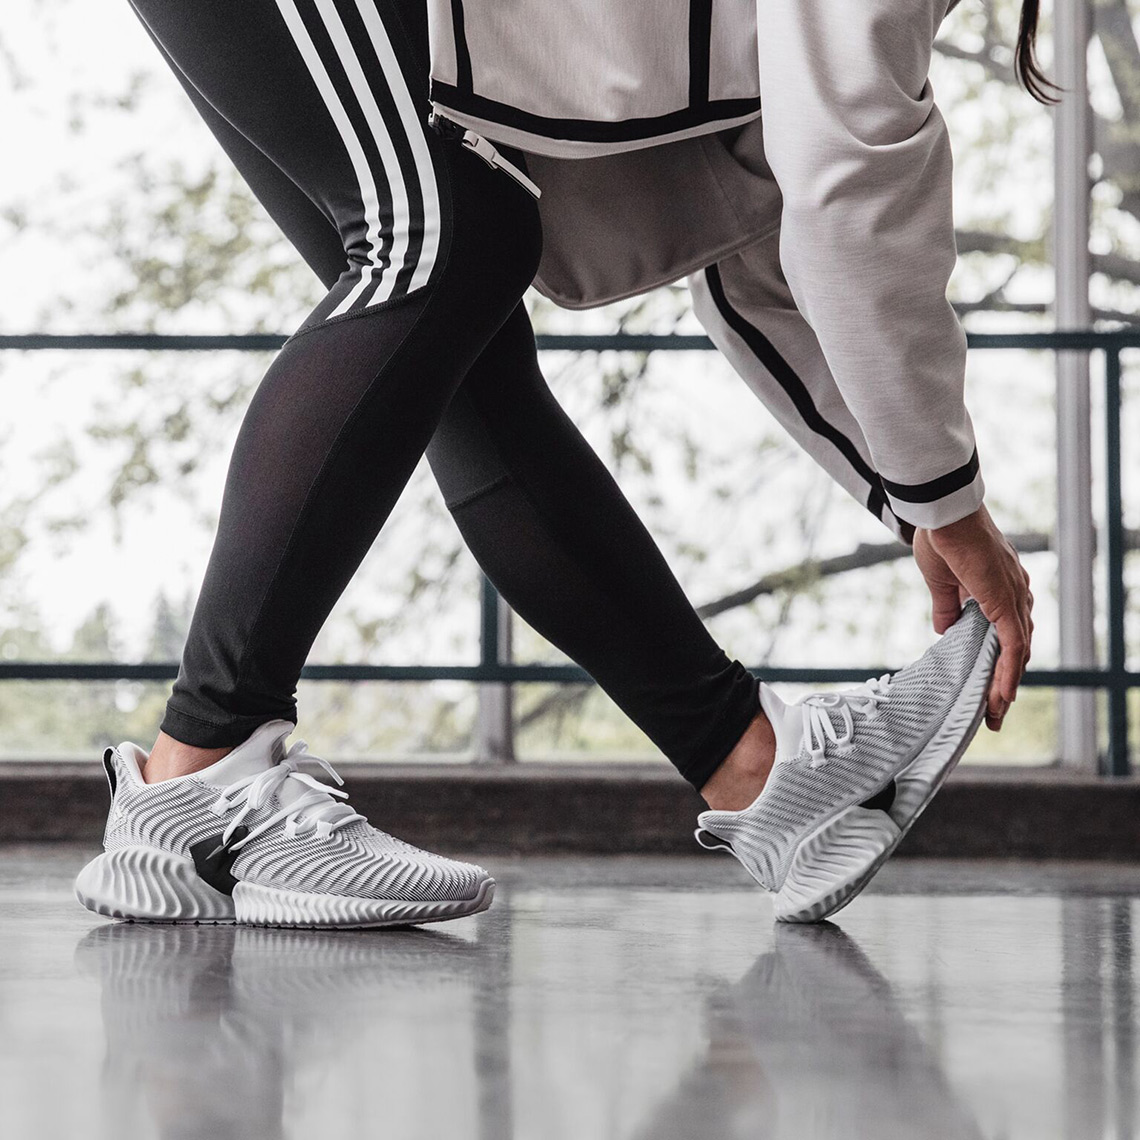 hot sale online c312e b1758 adidas AlphaBounce Instinct Release Date July 7th, 2018